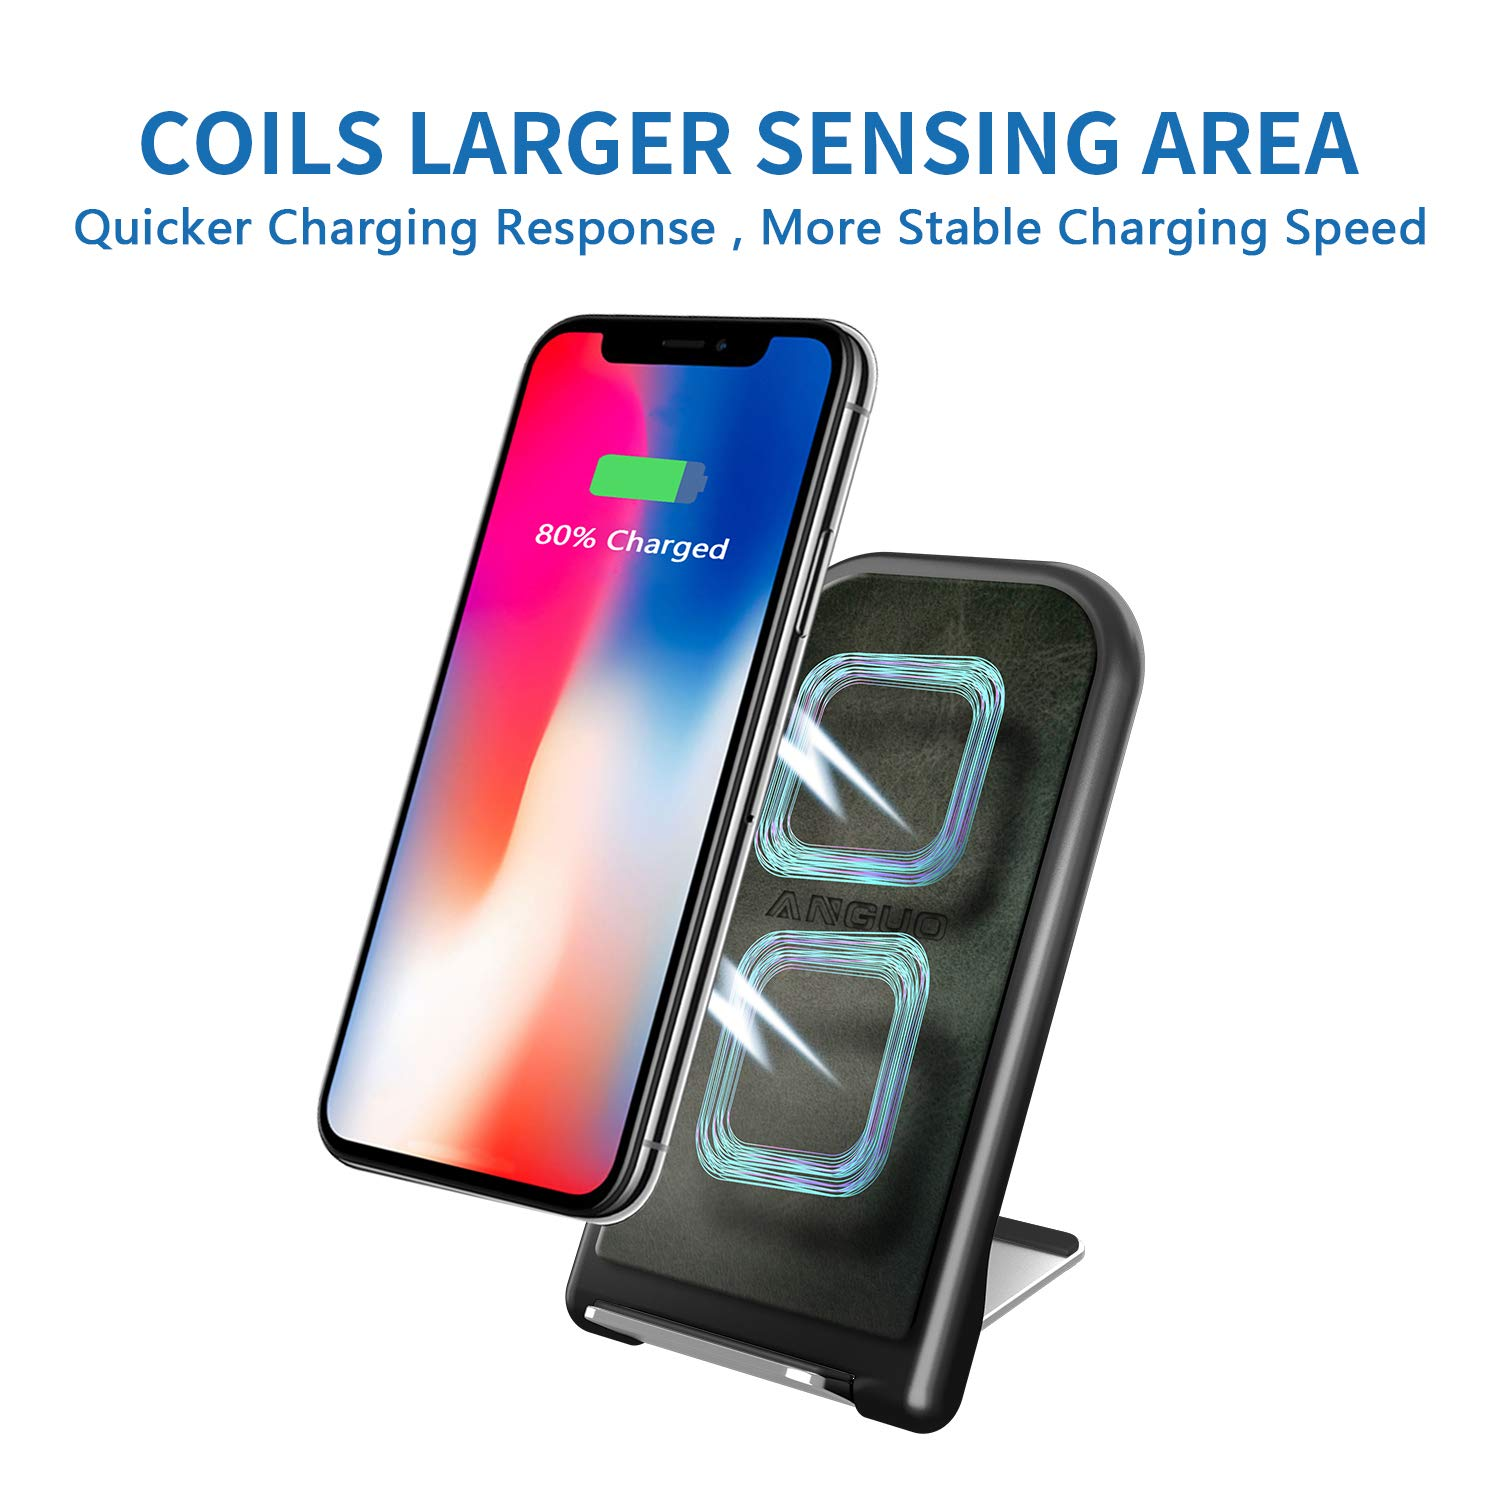 ANGUO Wireless Charging Stand, Qi Certified 10W Fast Wireless Charger Stand for Galaxy S9/S9+ Note 8/5 S8/S8+ S7/S7 Edge, Standard Charging for iPhone X/8/8+ (No AC Adapter)